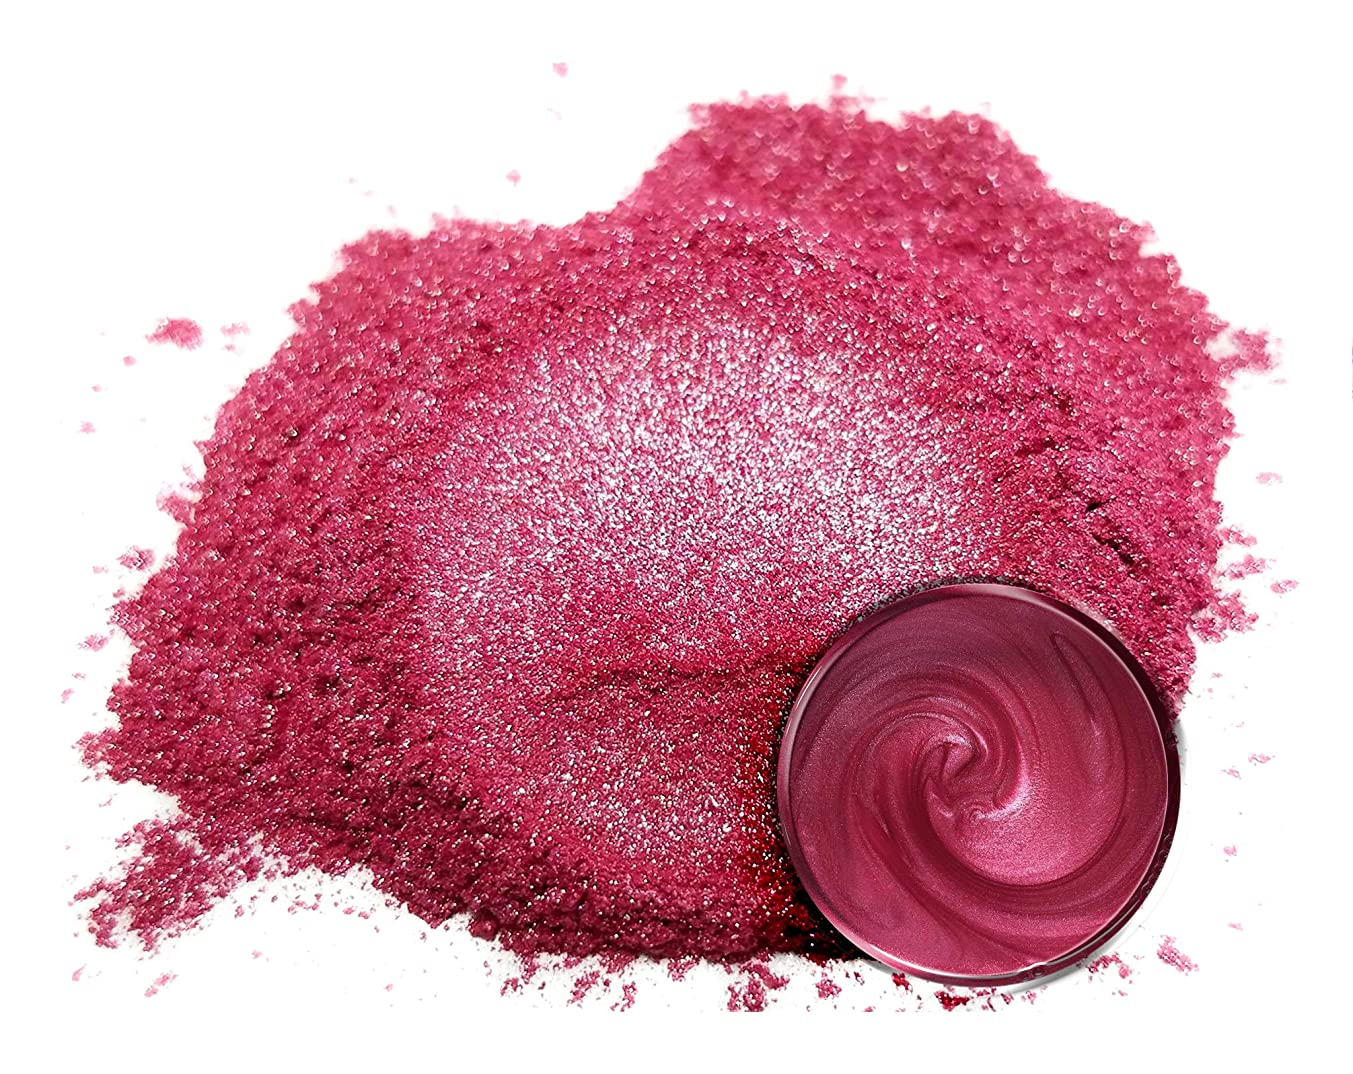 "Eye Candy Mica Powder Pigment ""Beniimo Red"" (50g) Multipurpose DIY Arts and Crafts Additive 